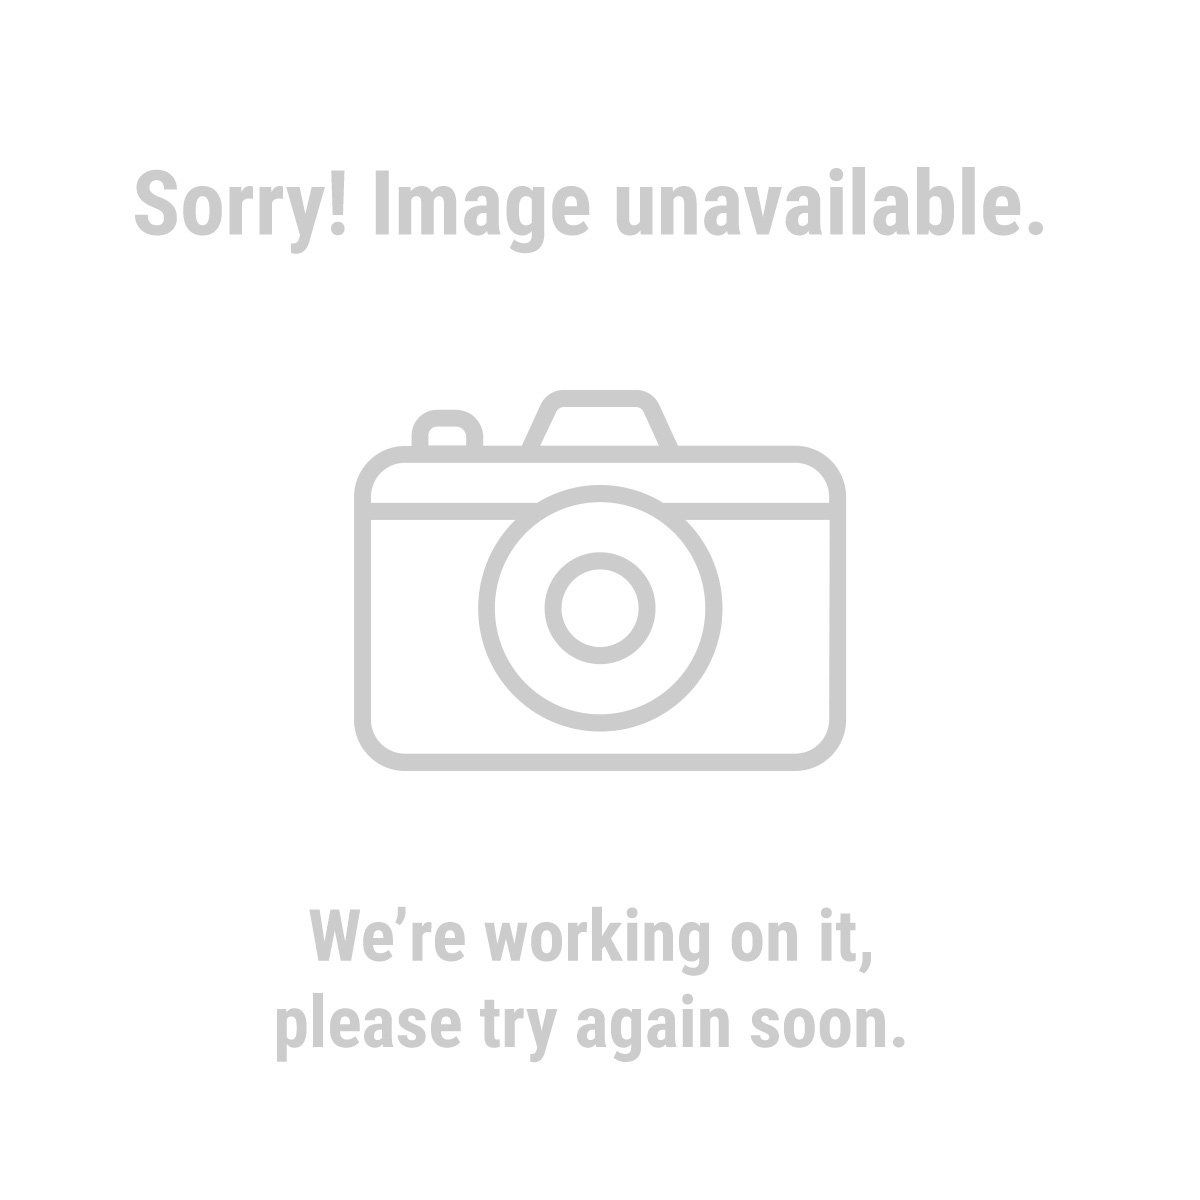 Warrior® 60797 4-1/2 in. 40 Grit Flap Zirc Disc